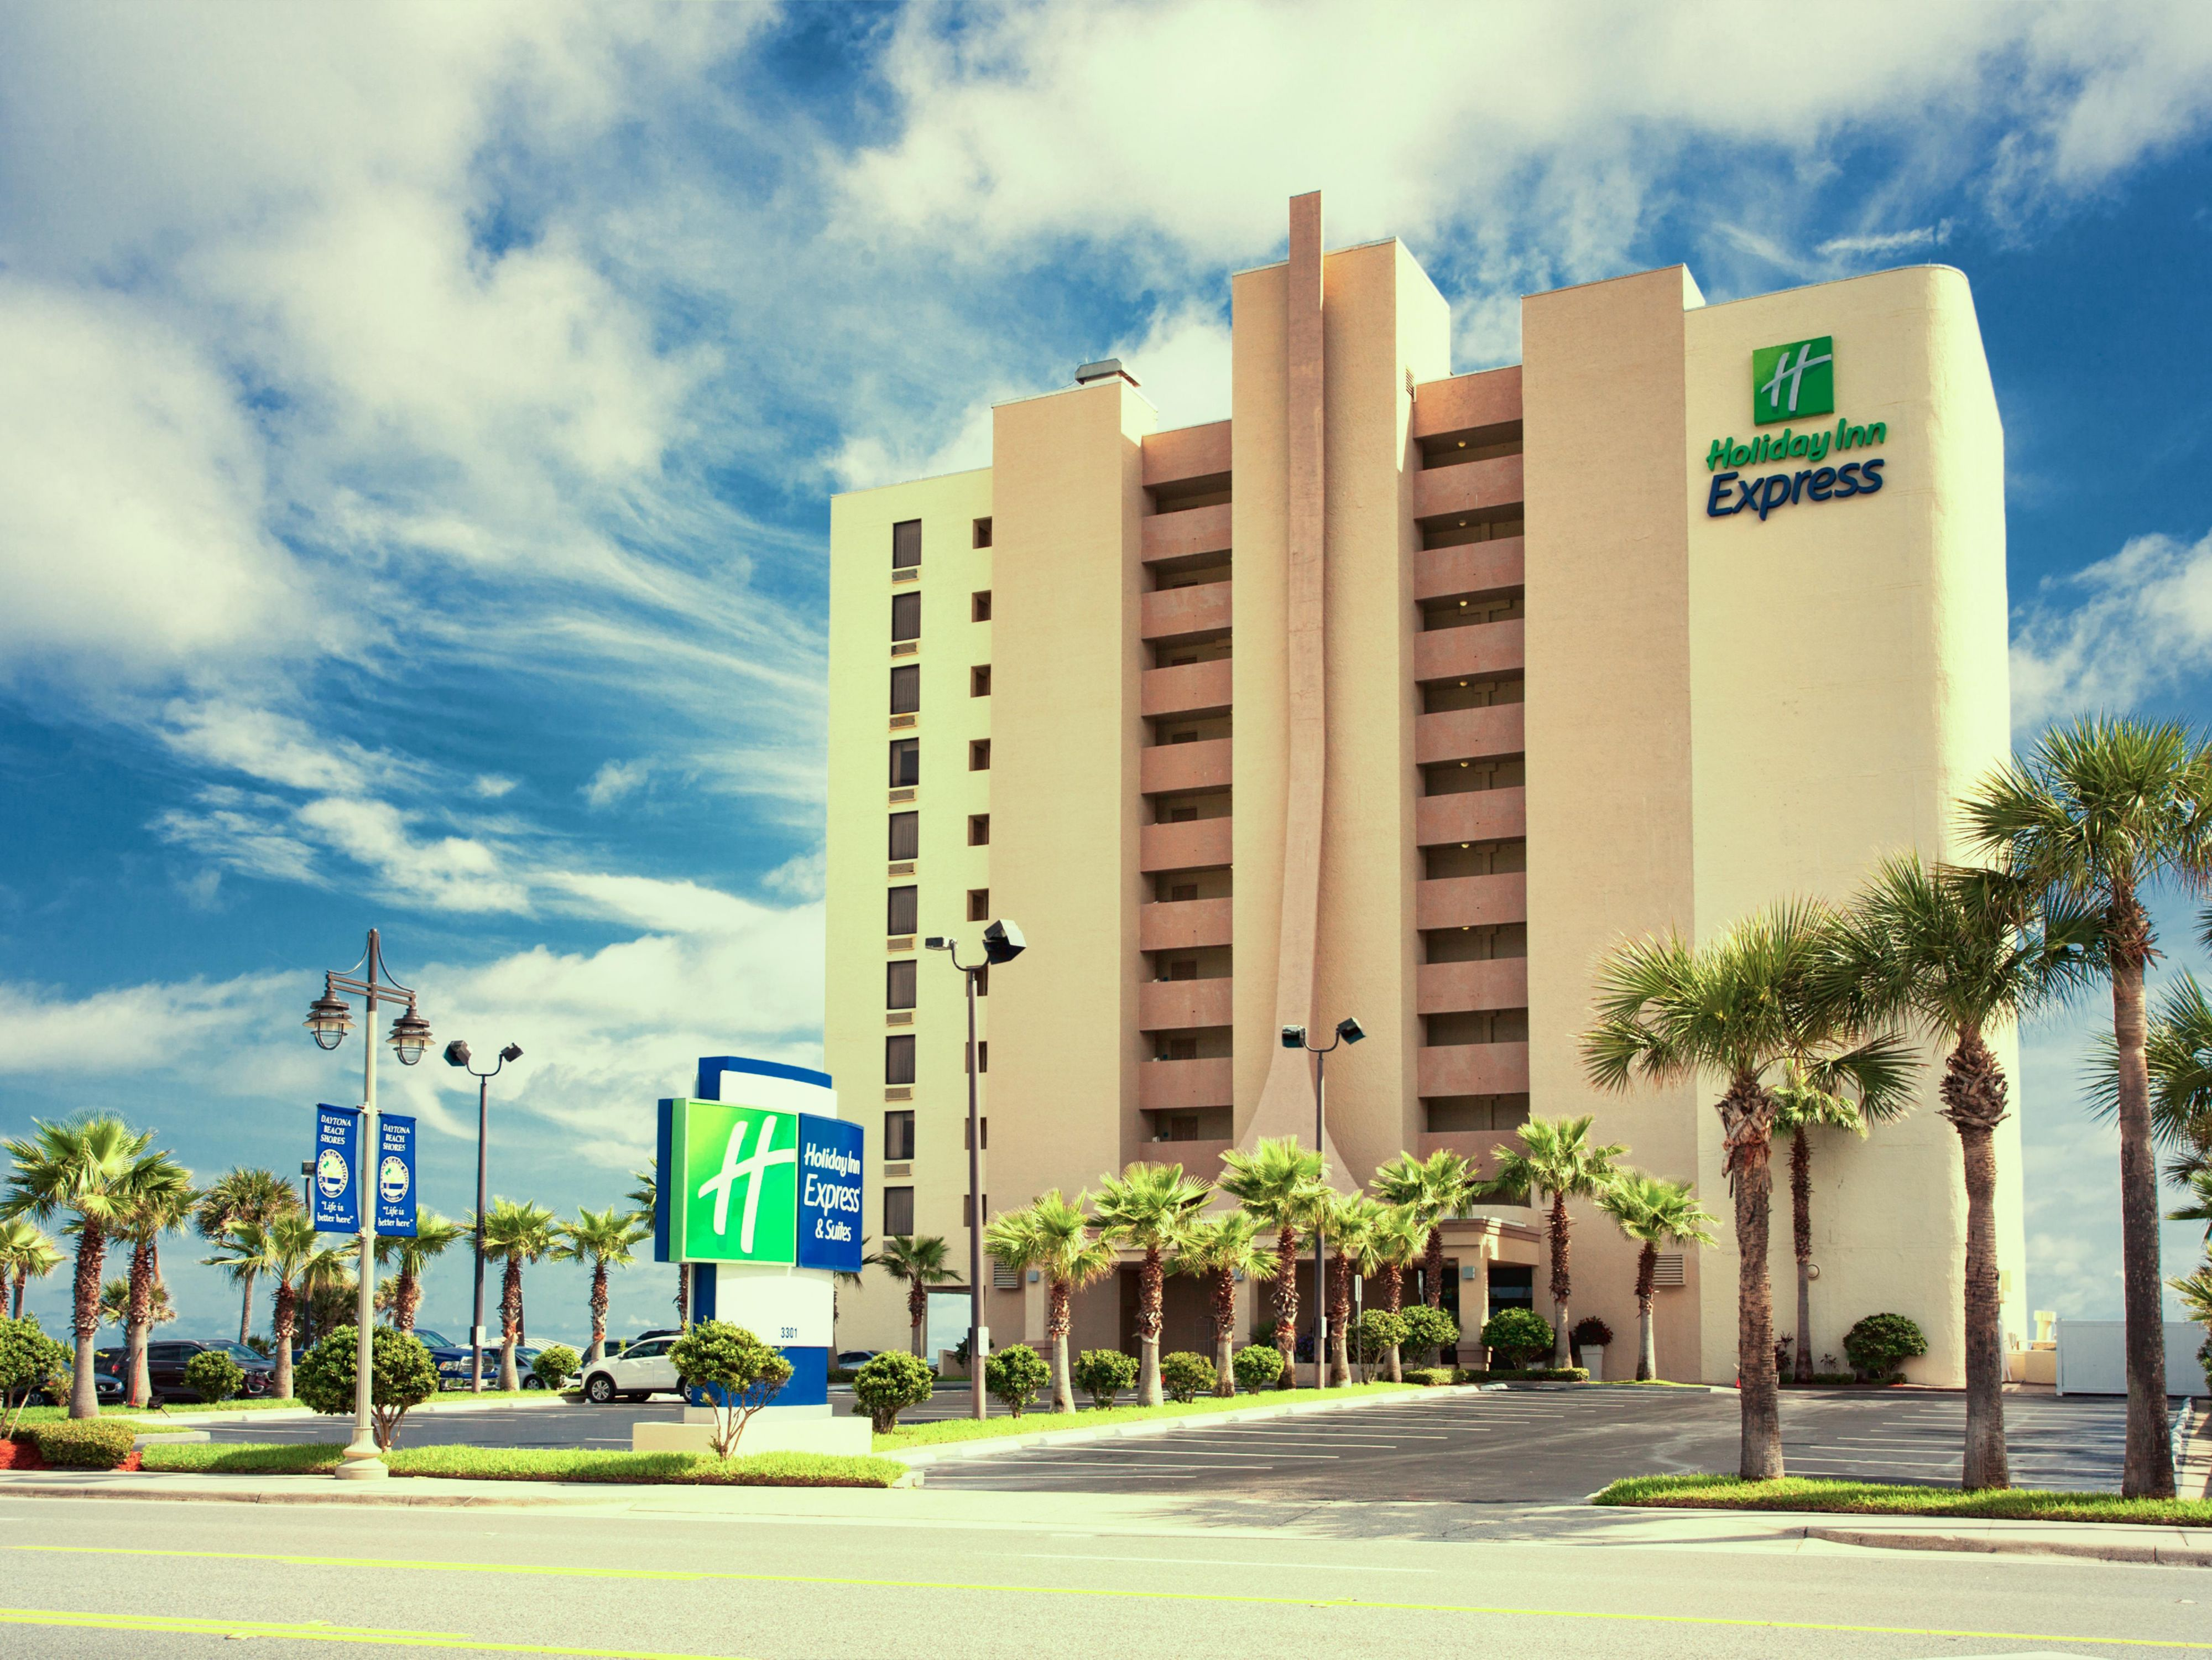 Ihg Hotels Daytona Beach